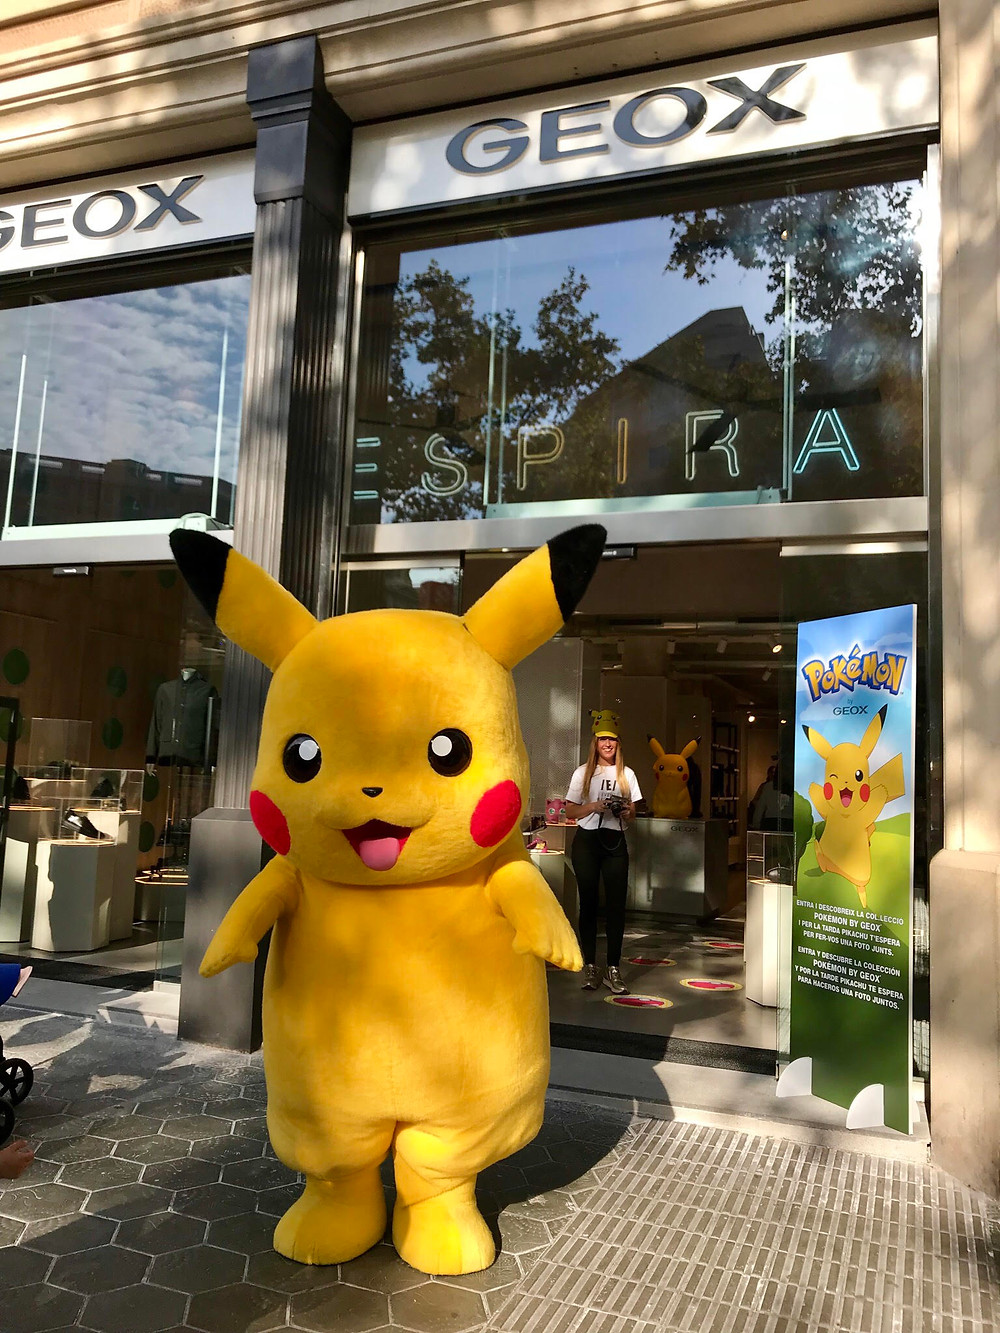 In Event Barcelona we have a real pikachu who makes fun